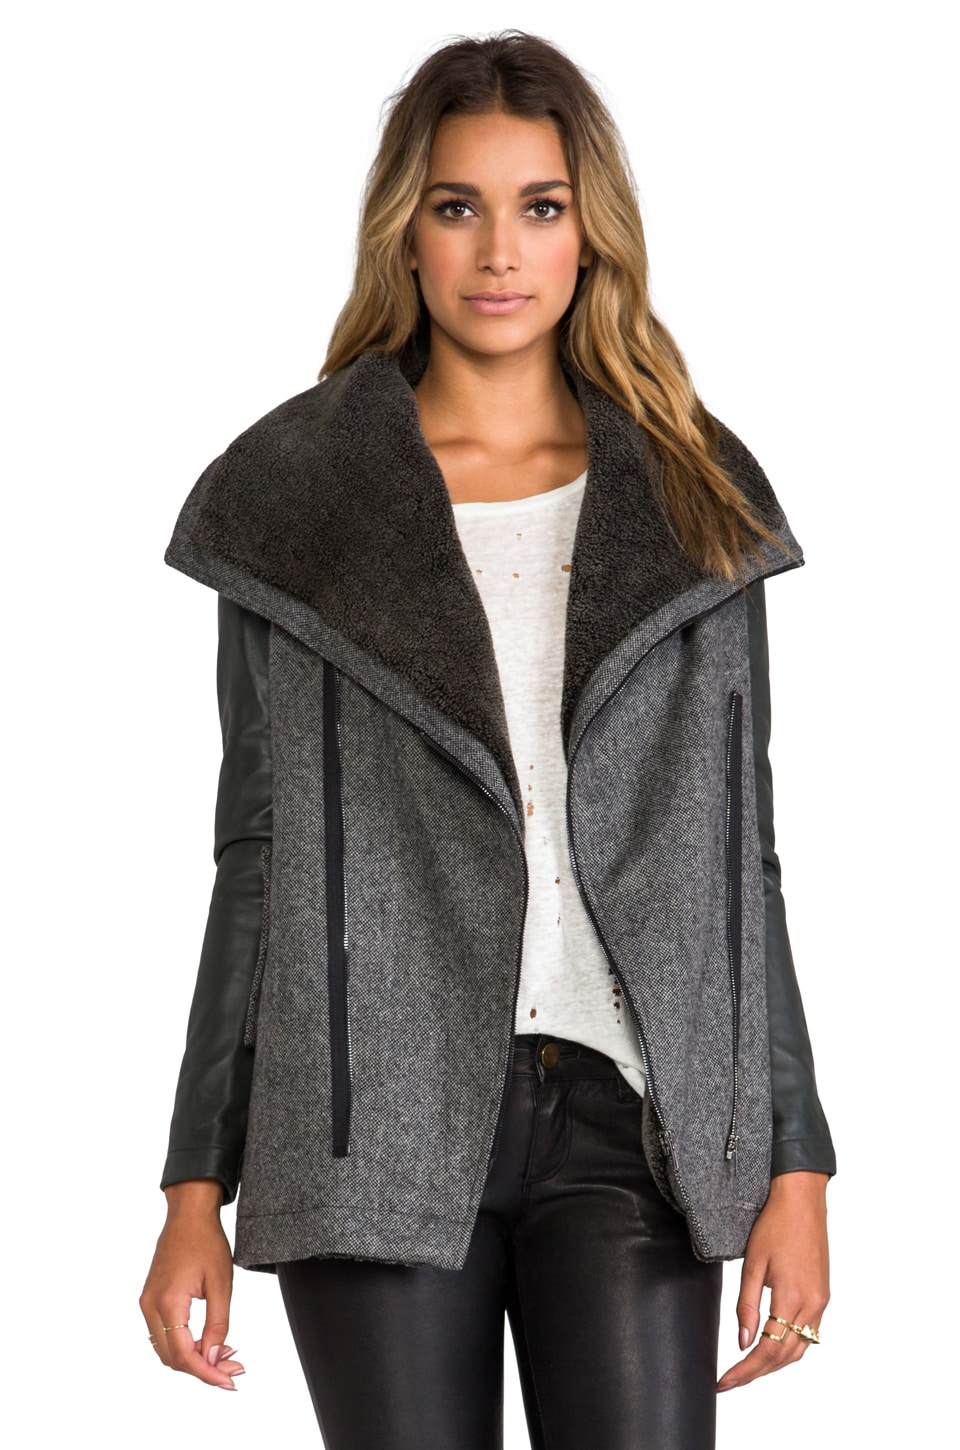 Funktional Atomic Faux Shearling Jacket in Atomic